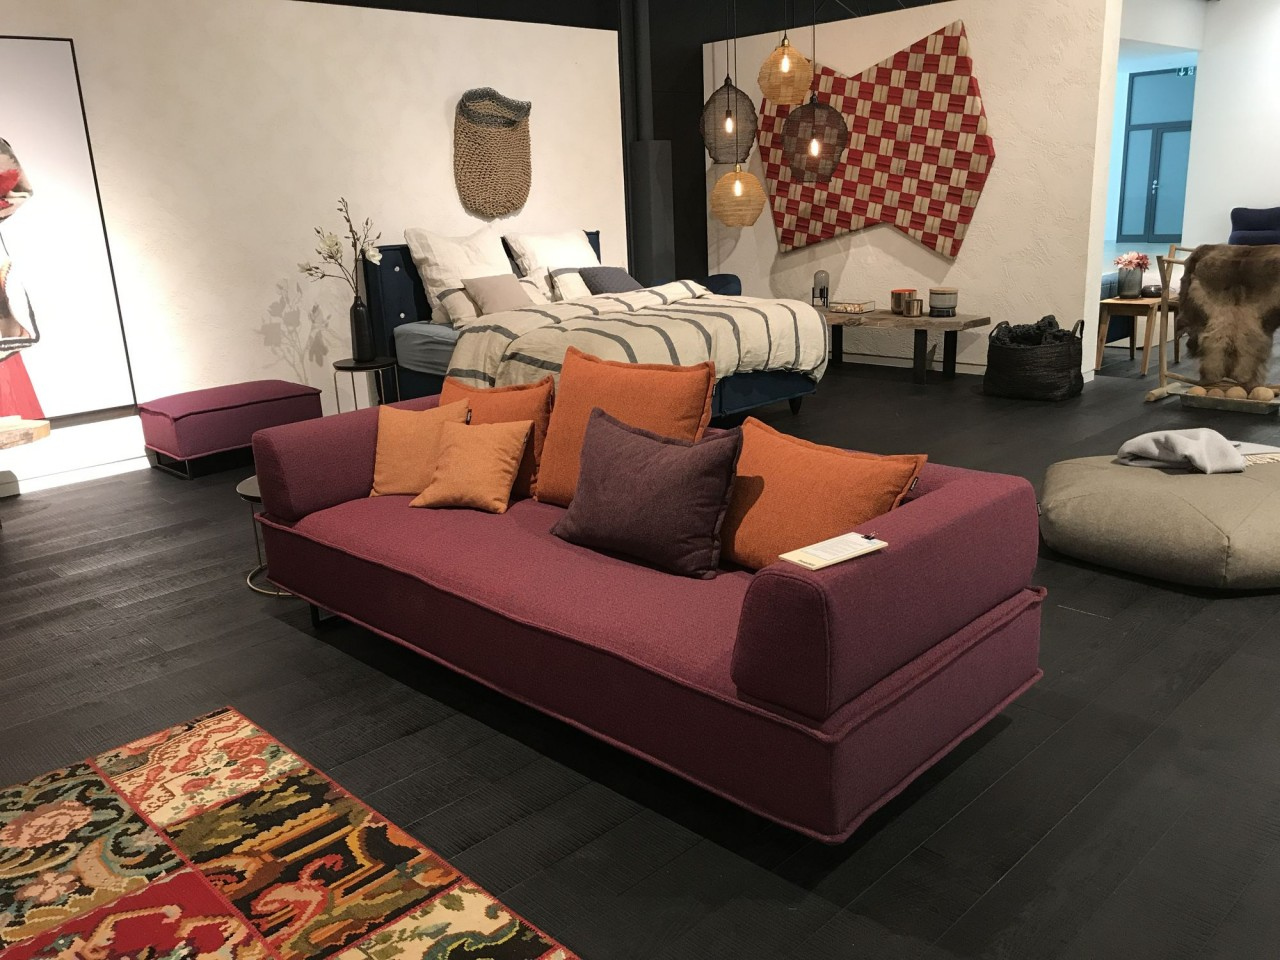 freistil 144 rolf benz sofa in stoff in der farbe violett freistil 144 freistil rolf benz. Black Bedroom Furniture Sets. Home Design Ideas